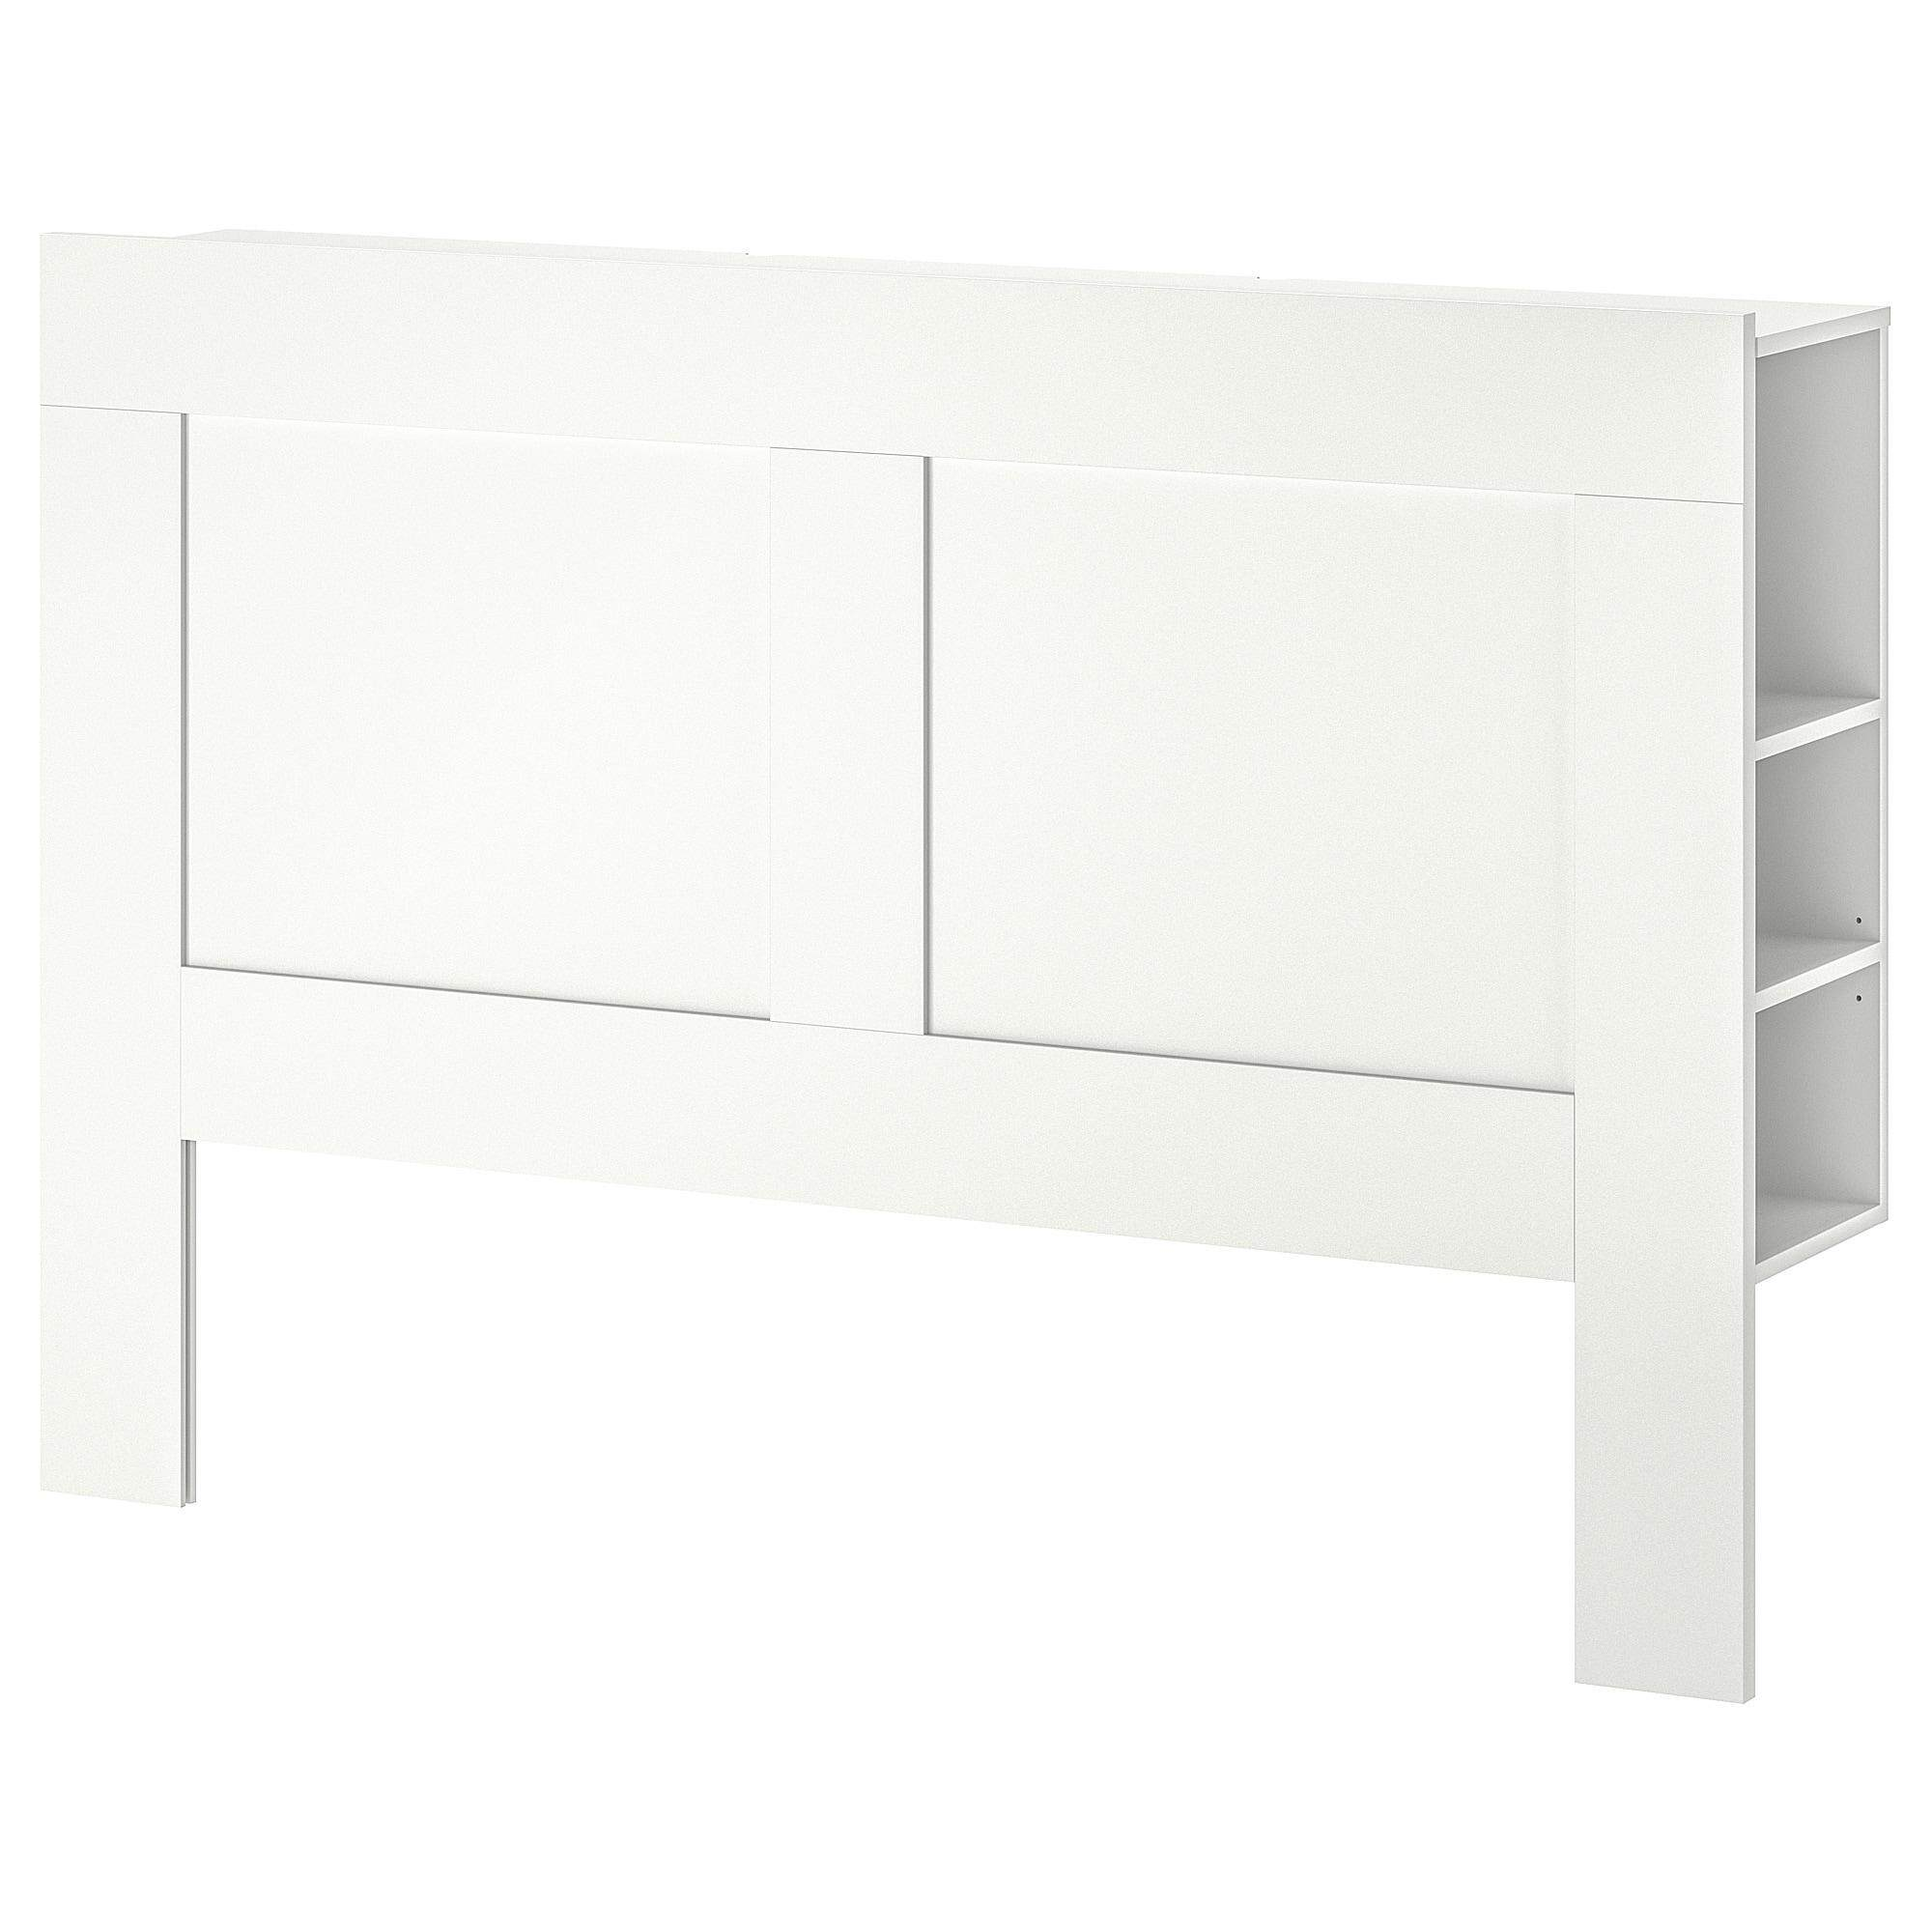 Brimnes Headboard With Storage Compartment White 150 Cm By Eightynine.